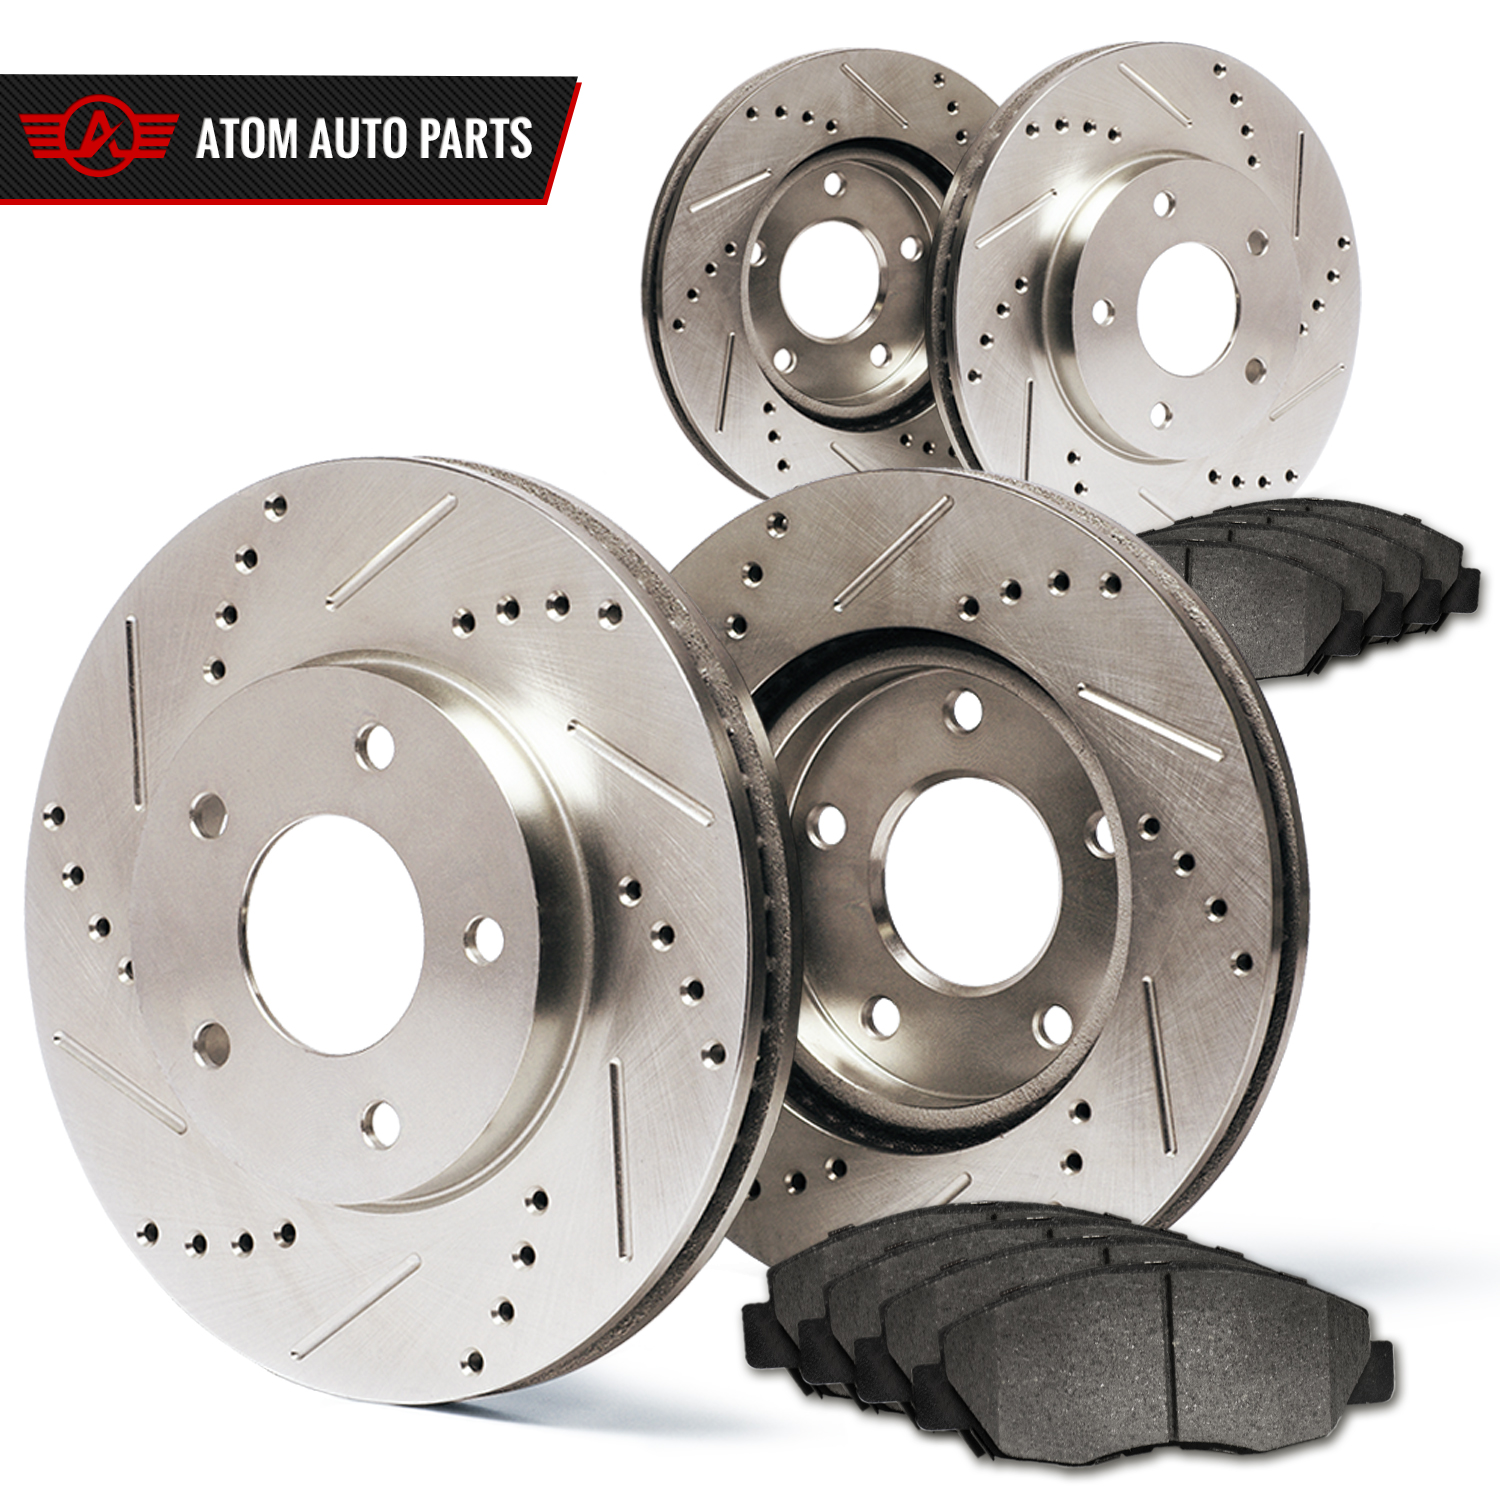 2003-2004-2005-Acura-TSX-Slotted-Drilled-Rotors-Metallic-Pads-F-R